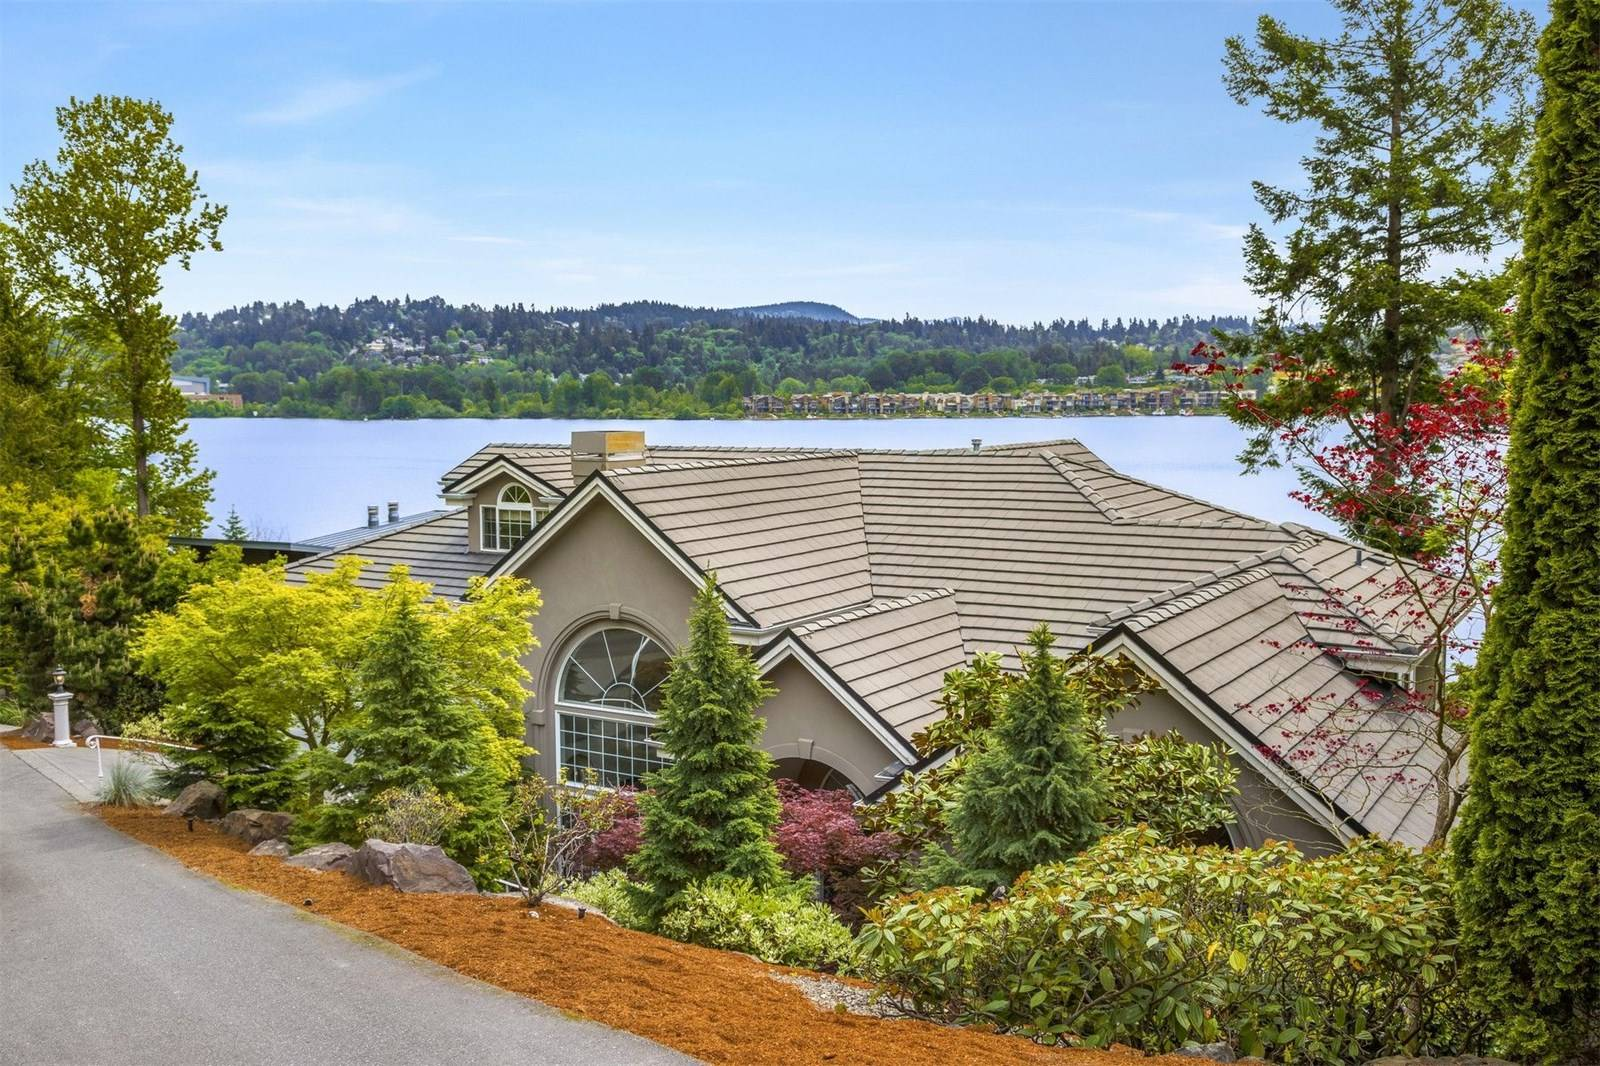 7908 E Mercer Way, Mercer Island